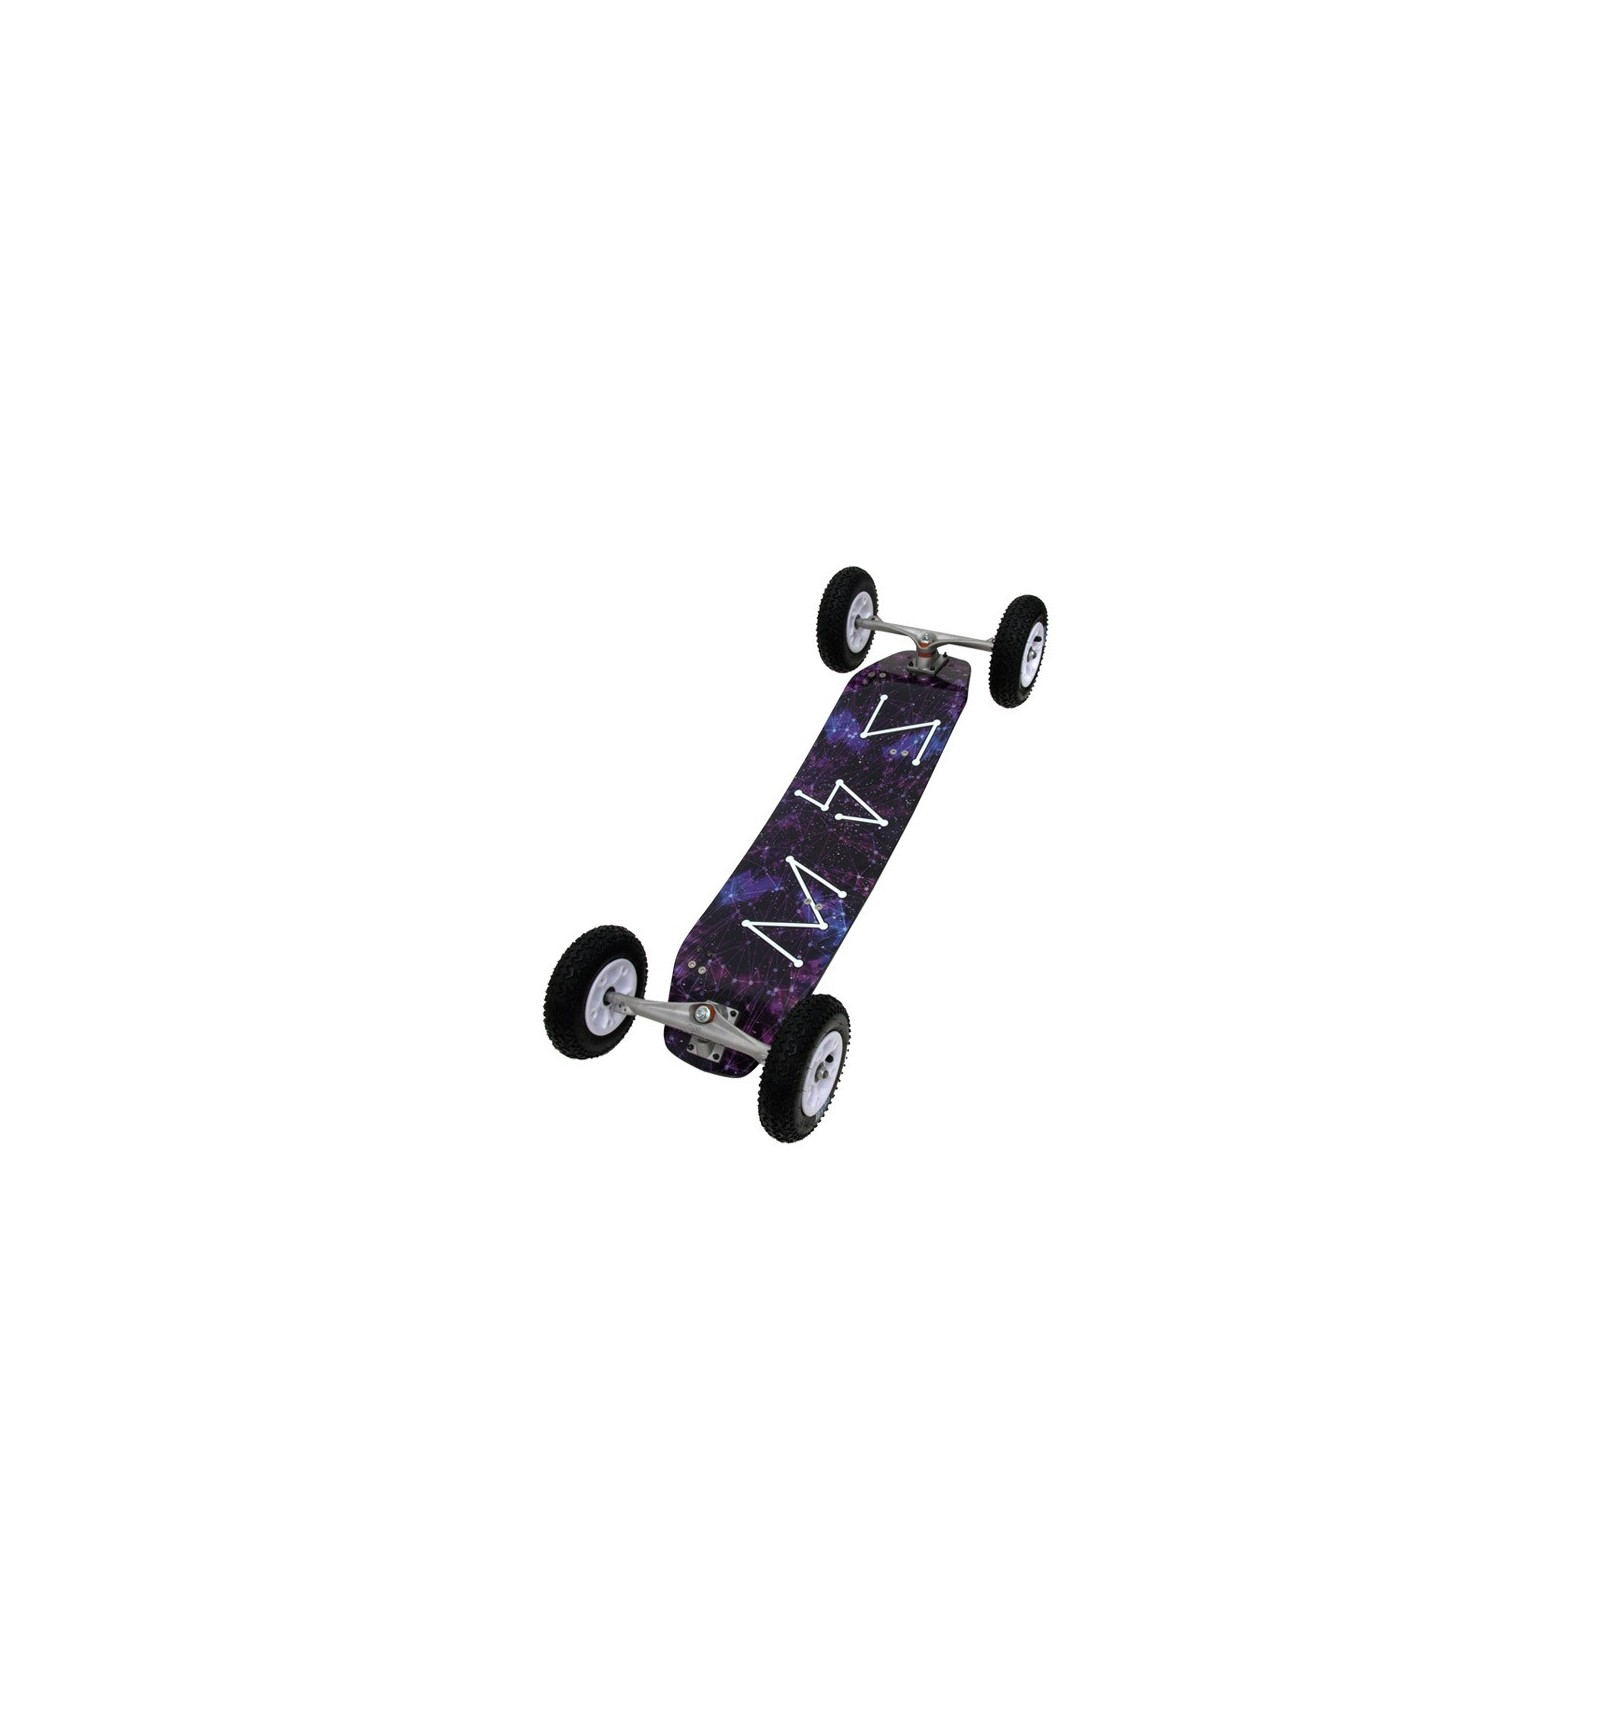 pack mountainboard d butant 9 pouces packs mountainboard. Black Bedroom Furniture Sets. Home Design Ideas